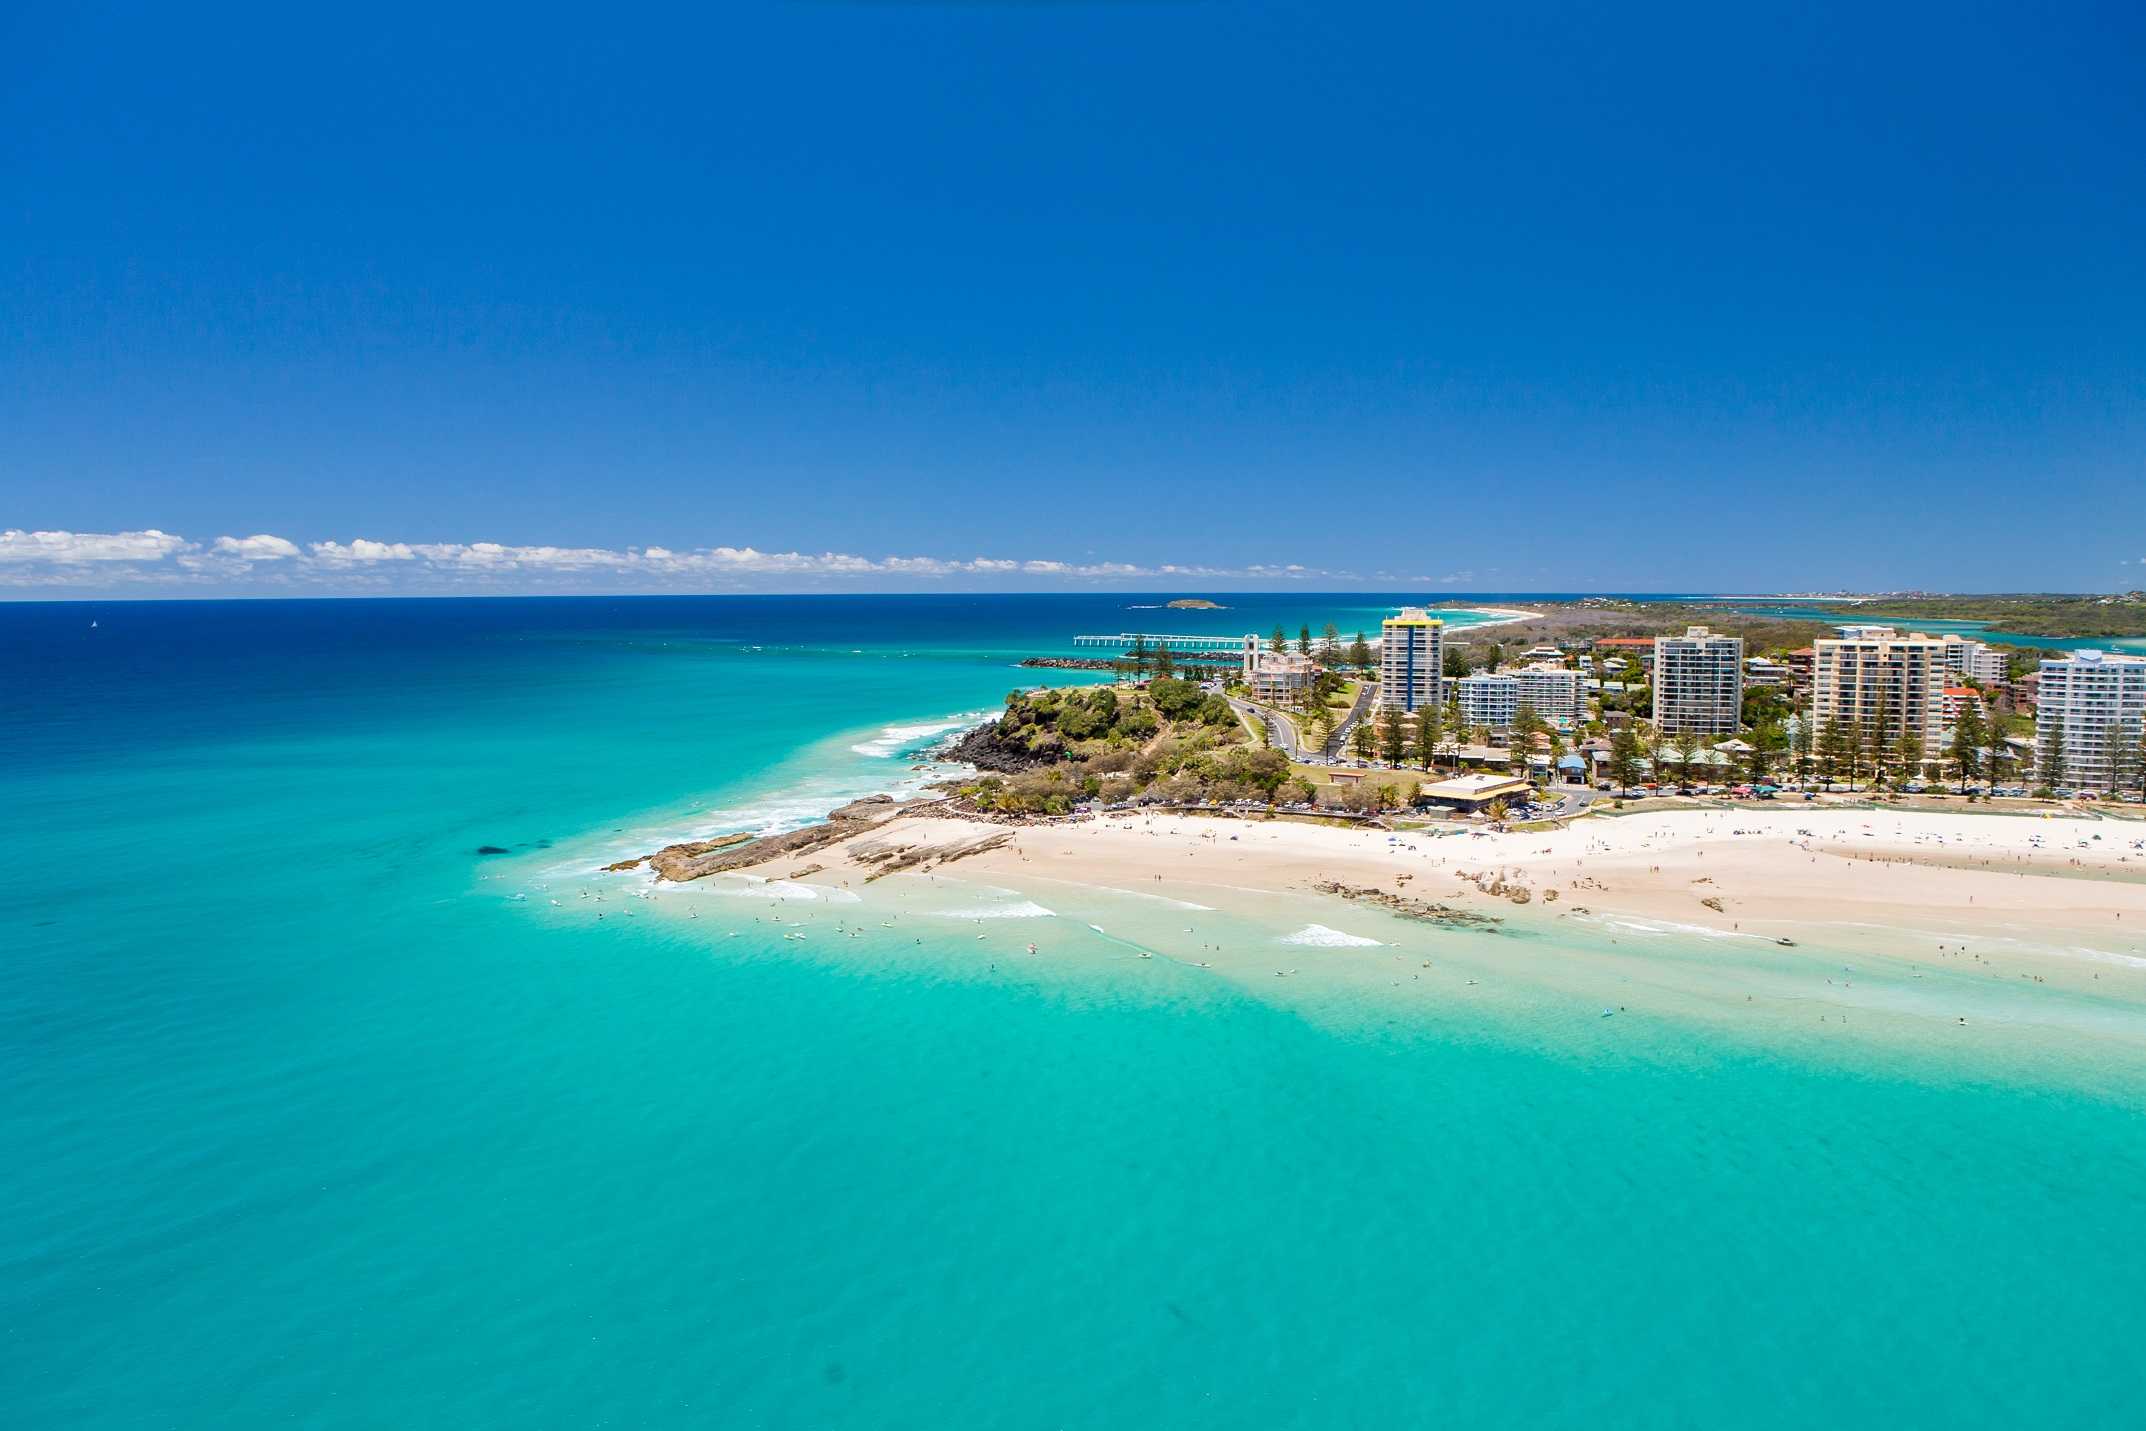 Locations such as Coolangatta on the Gold Coast possess incredible natural amenity, although this is offset somewhat by higher density construction and a higher crime rate than the QLD average.